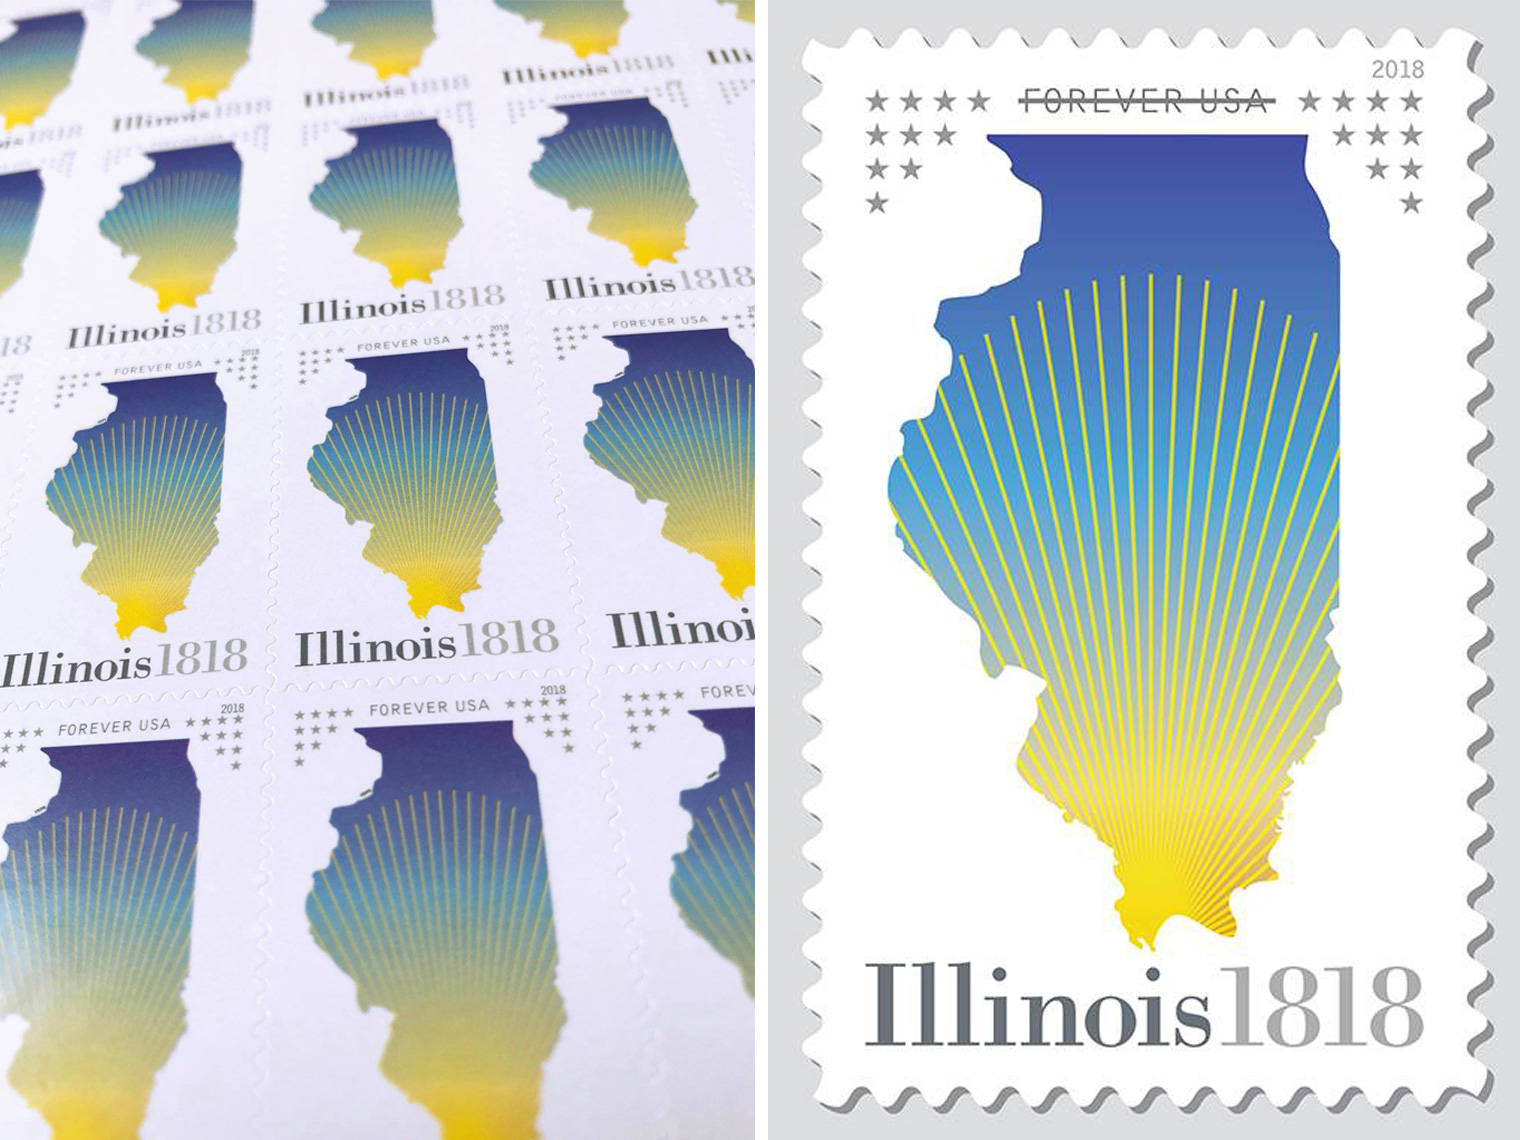 Illinois Statehood Stamp